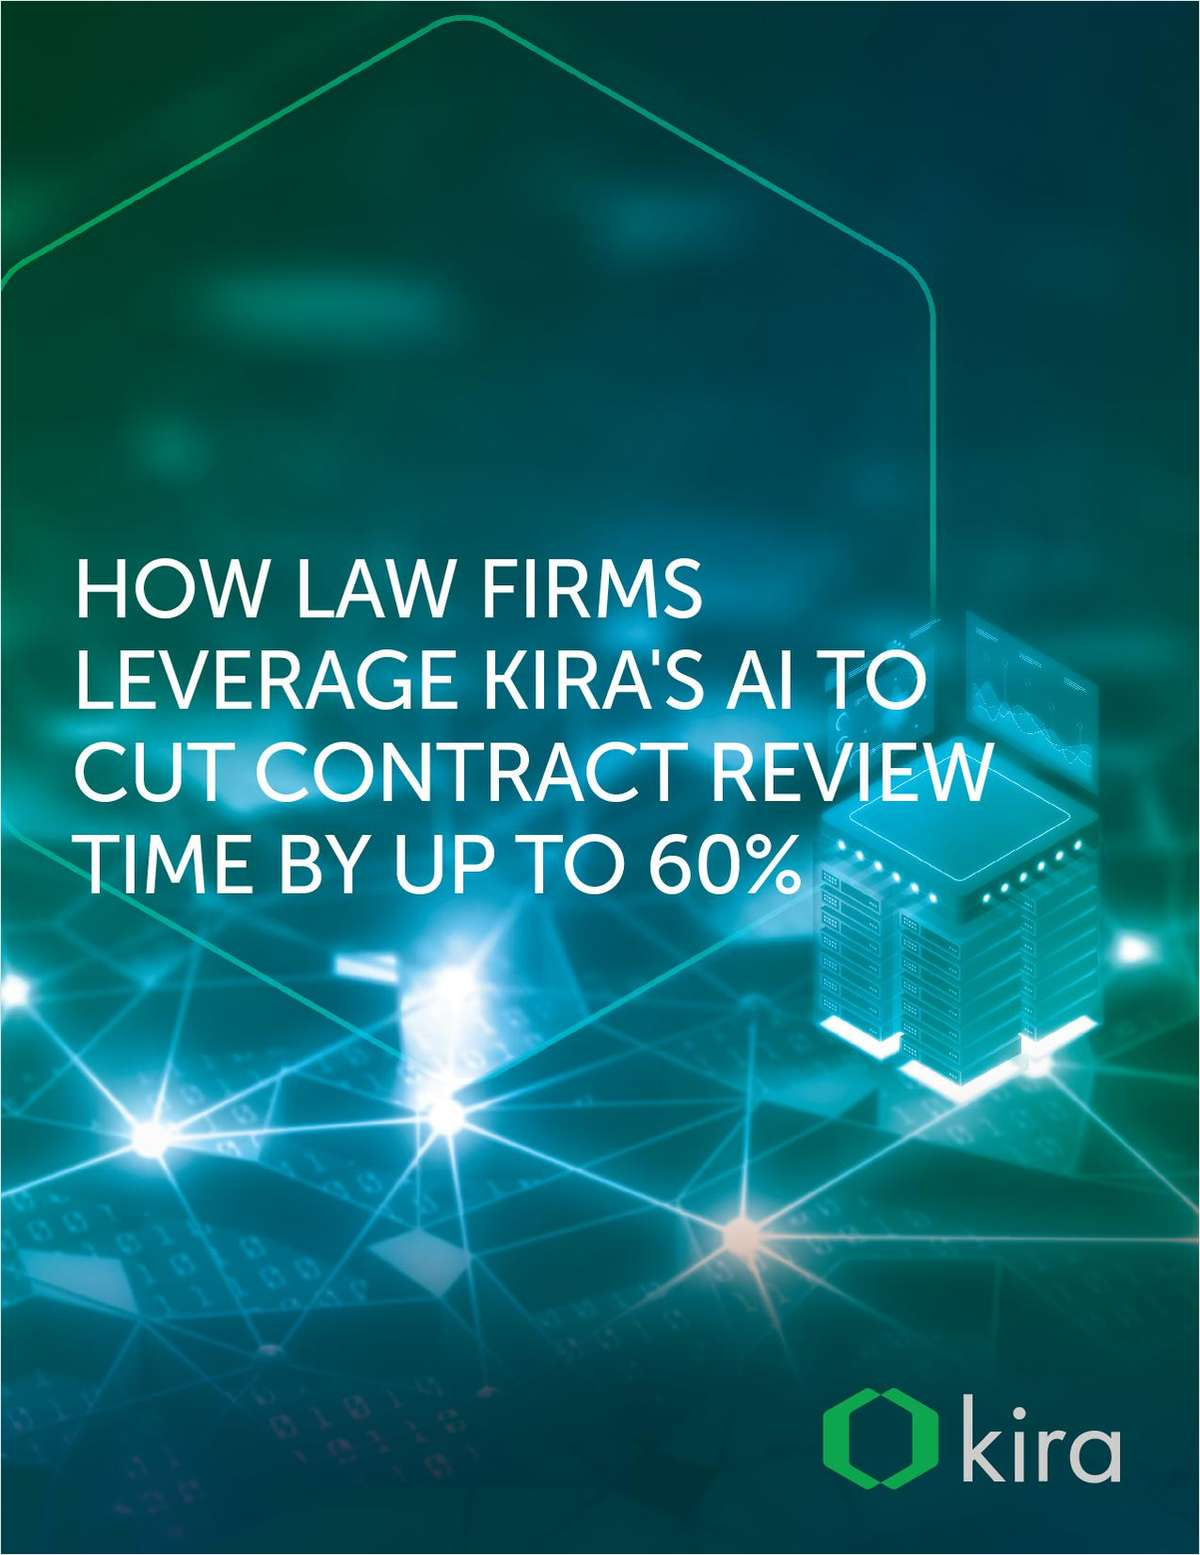 How Law Firms Can Leverage AI to Cut Contract Review by 60%